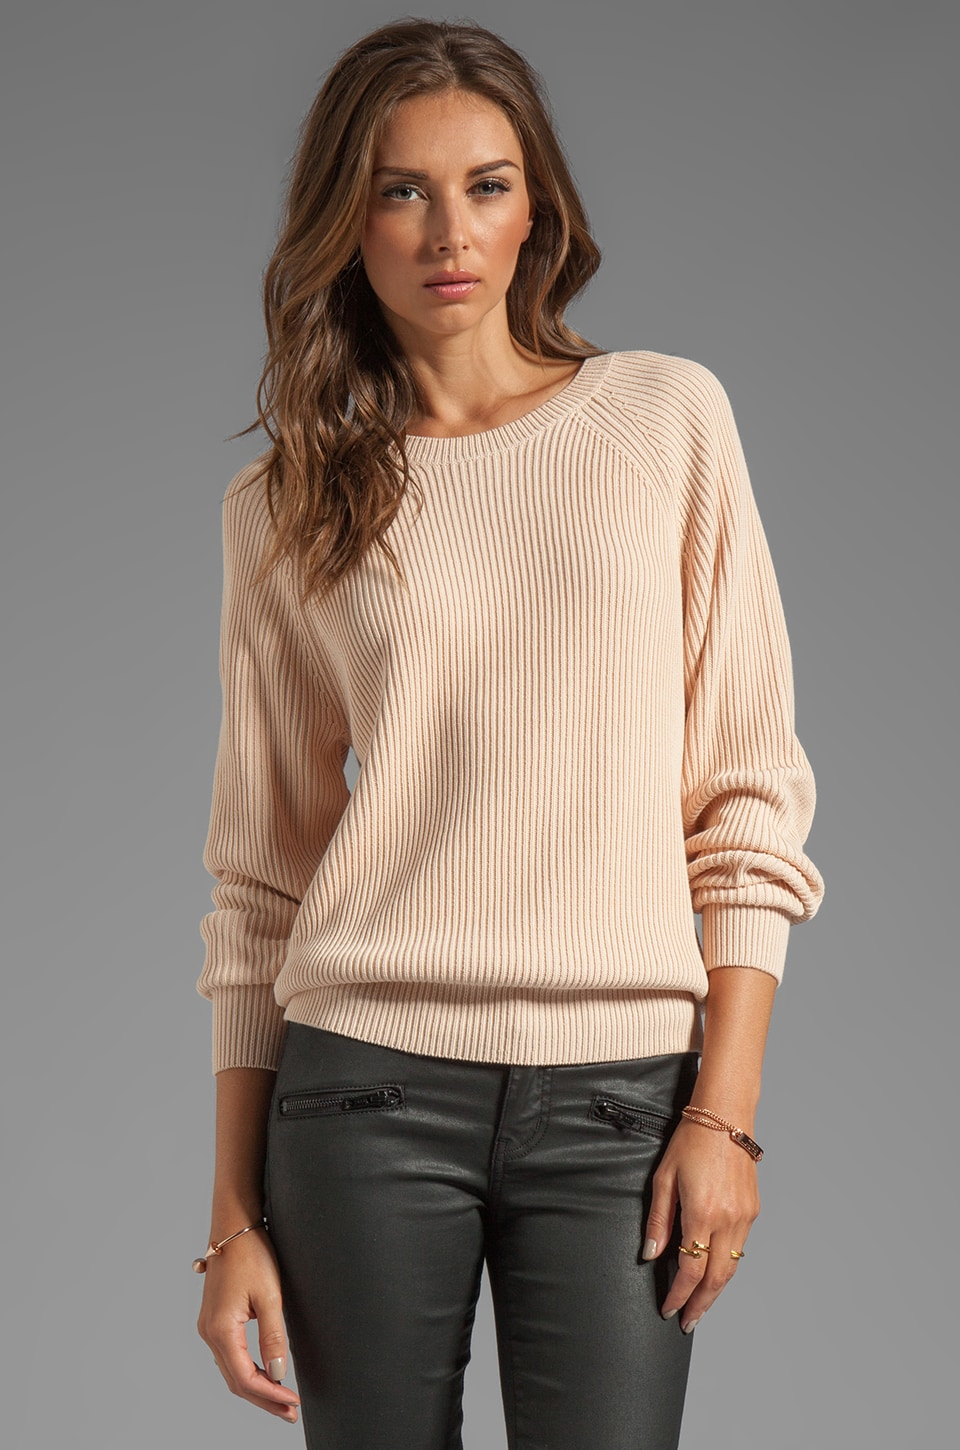 T by Alexander Wang Techy Slick Cotton Rib Sweater in Blush